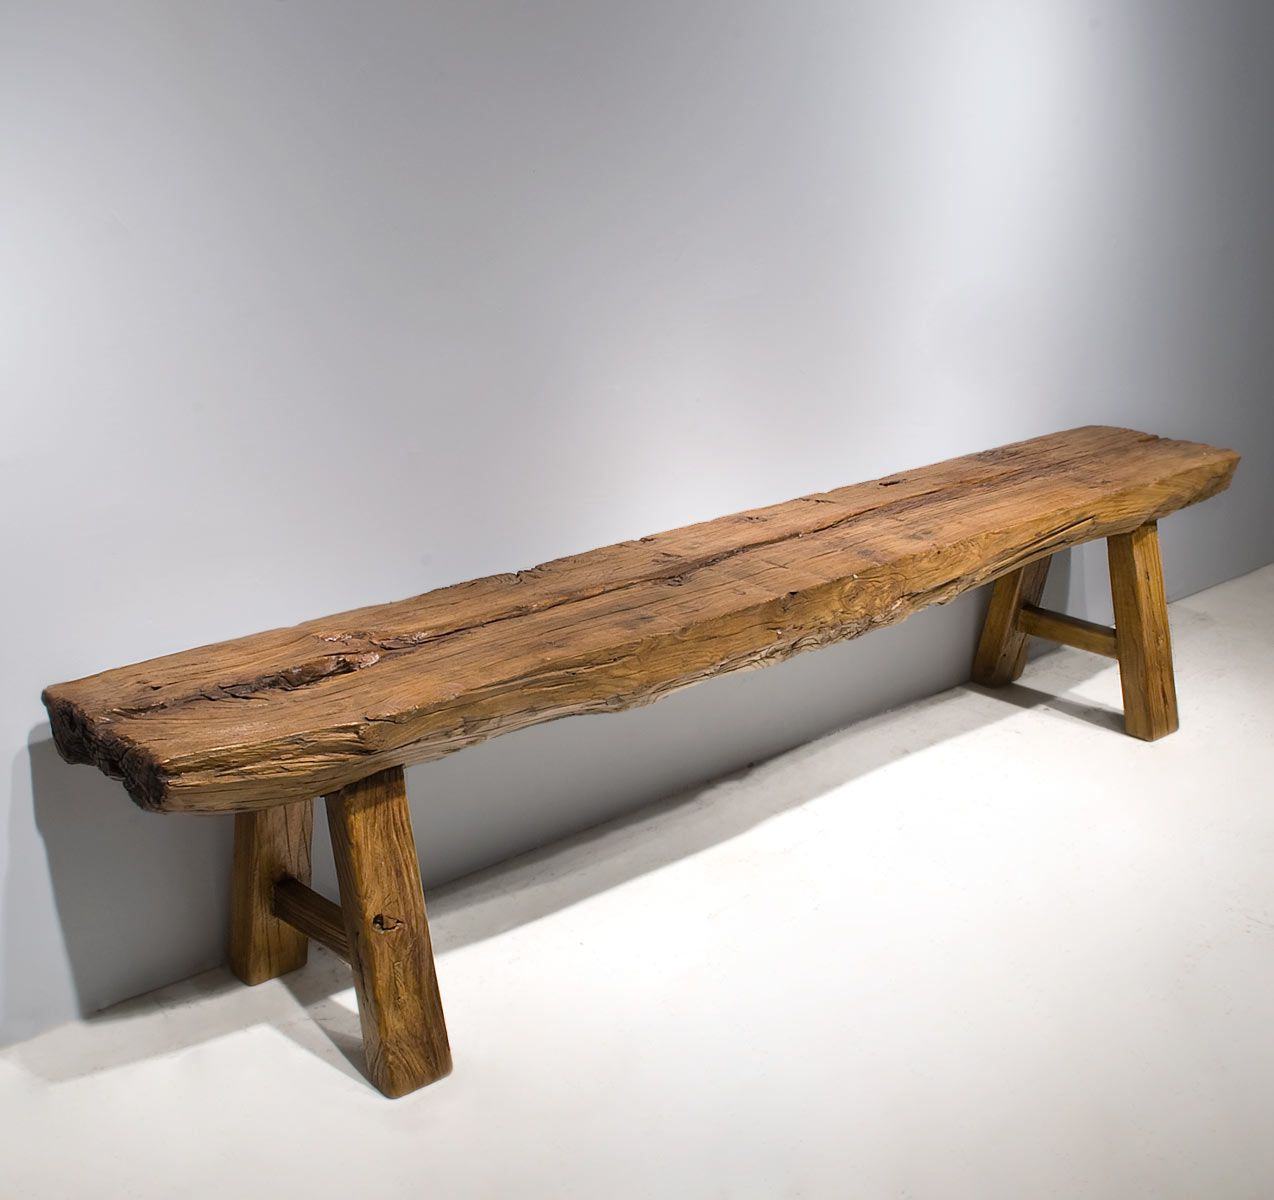 Rustic Benches Rustic Light Bench Rustic Furniture Pinterest Rustic Bench Bench And Lights